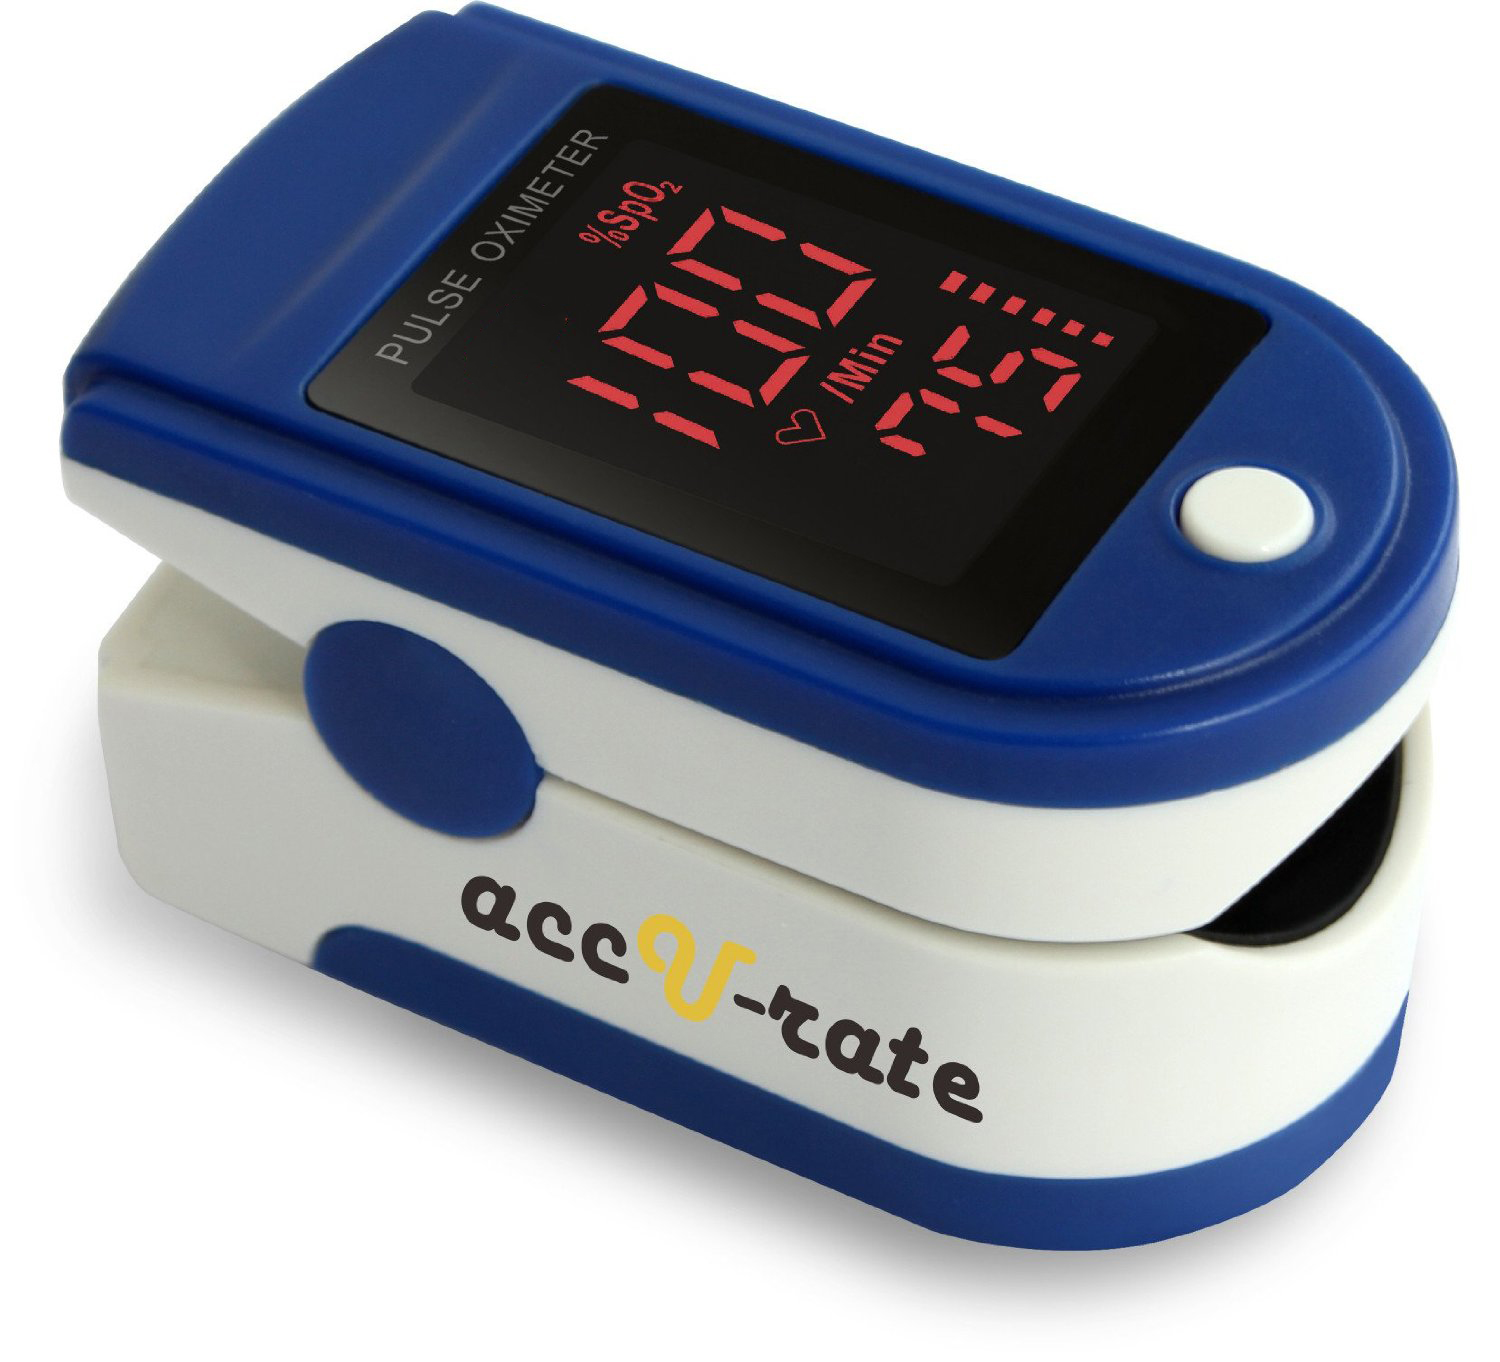 Image of Acc U Rate Pro Series 500DL Fingertip Pulse Oximeter Blood Oxygen Saturation Monitor with Silicon Cover, Batteries and Lanyard, Blue